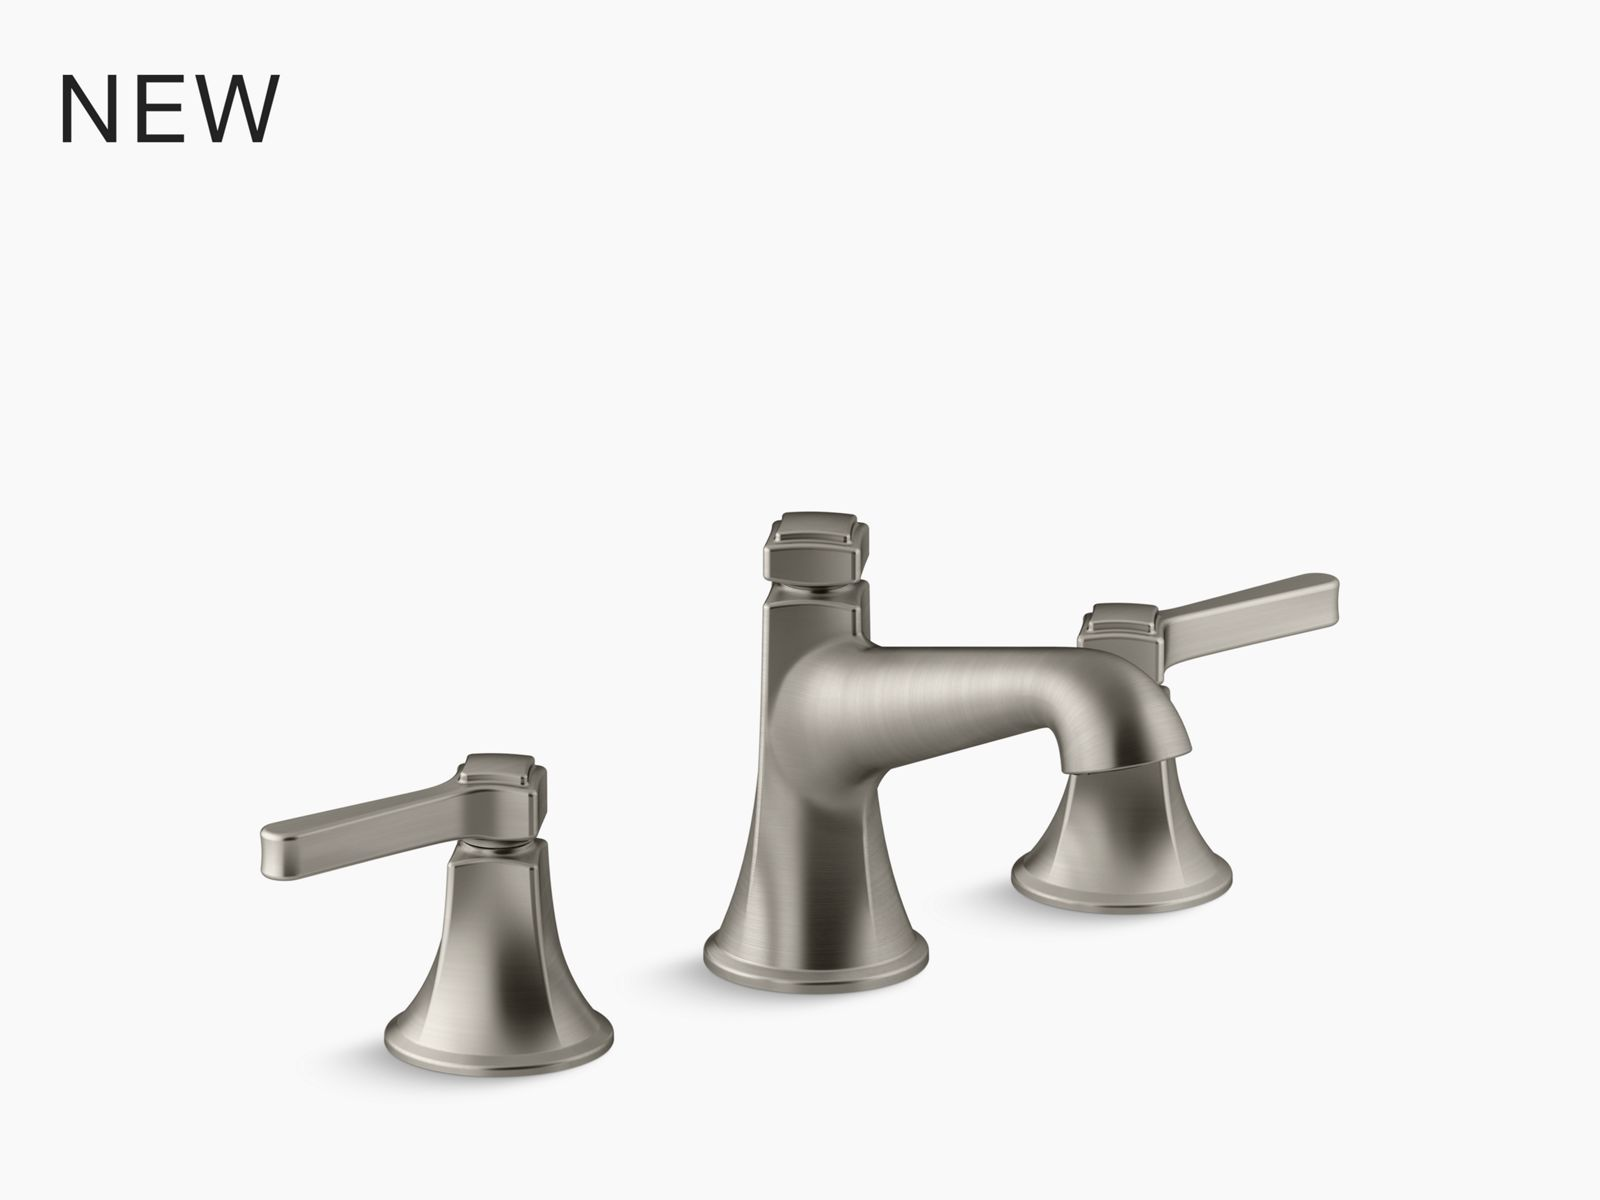 touchless pull down kitchen faucet with soap lotion dispenser